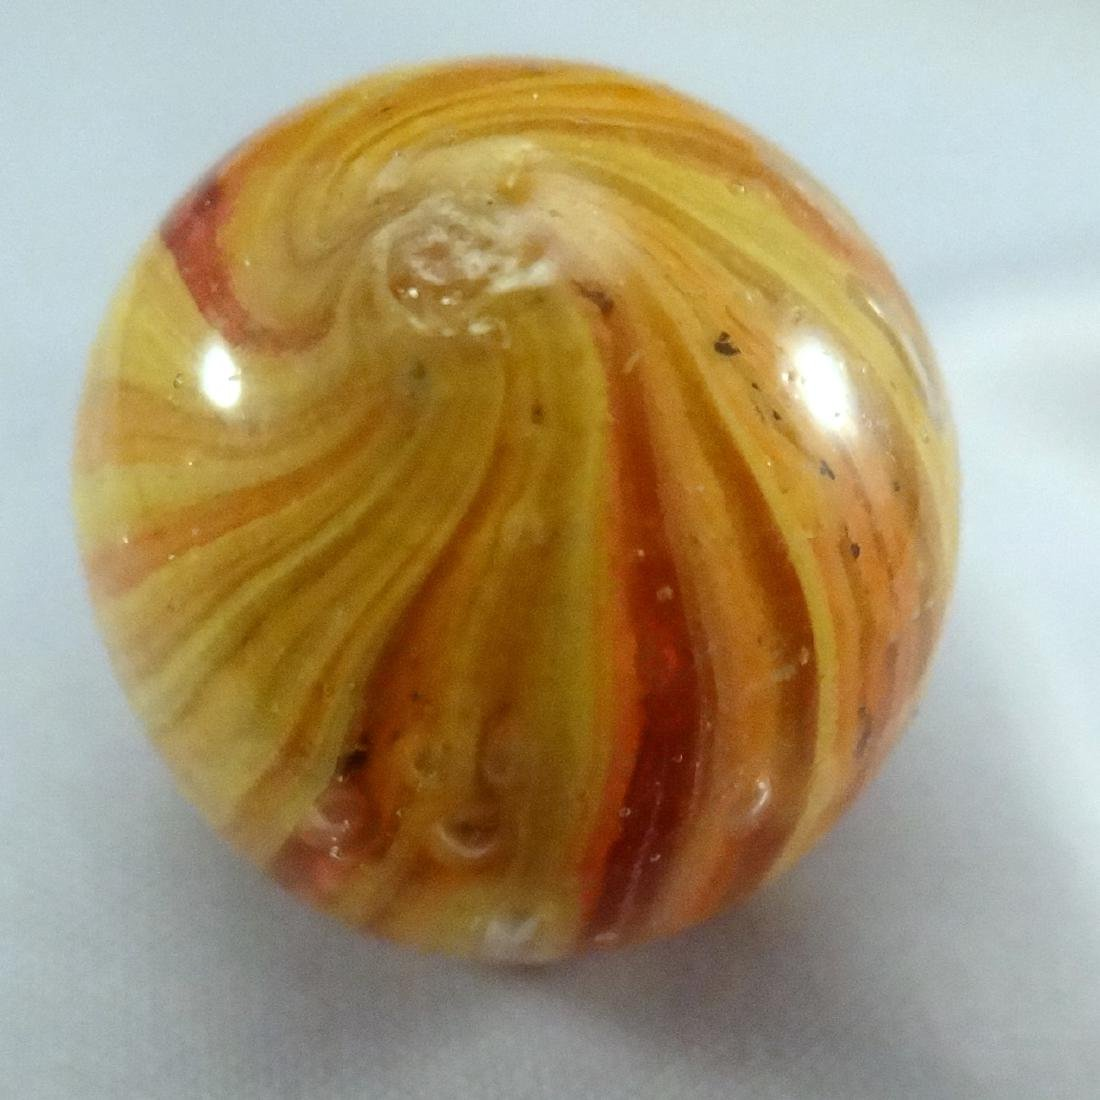 "Lot 60. END OF DAY, Onionskin. 25/32"". 9.9 - 3"